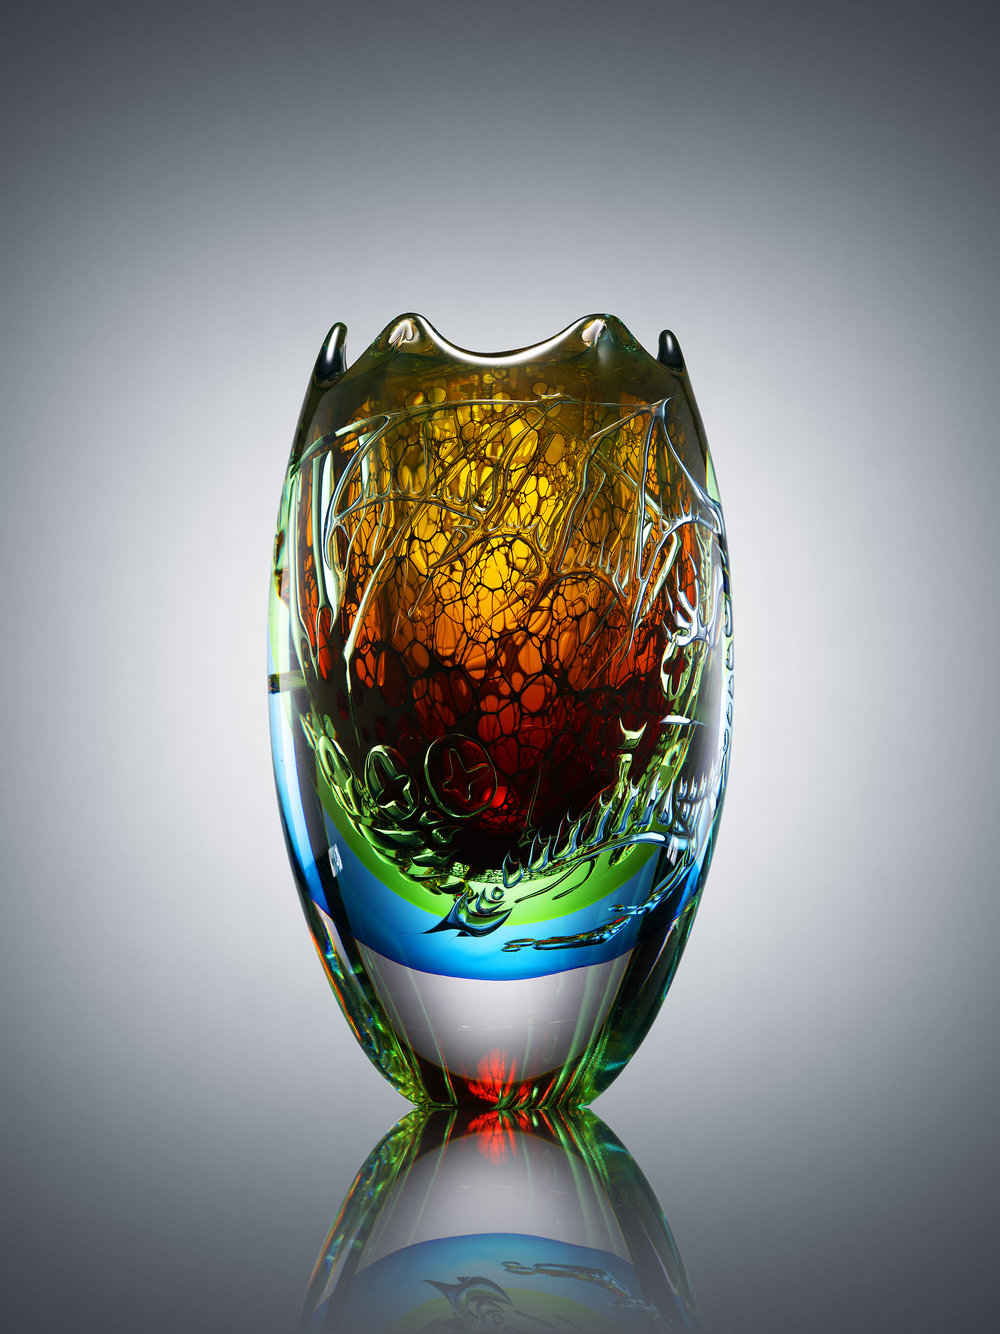 Micke Johansson, Explores, 2017, Double ariel glass, 14 x 6 x 6 in., Courtesy of Graariel Ltd